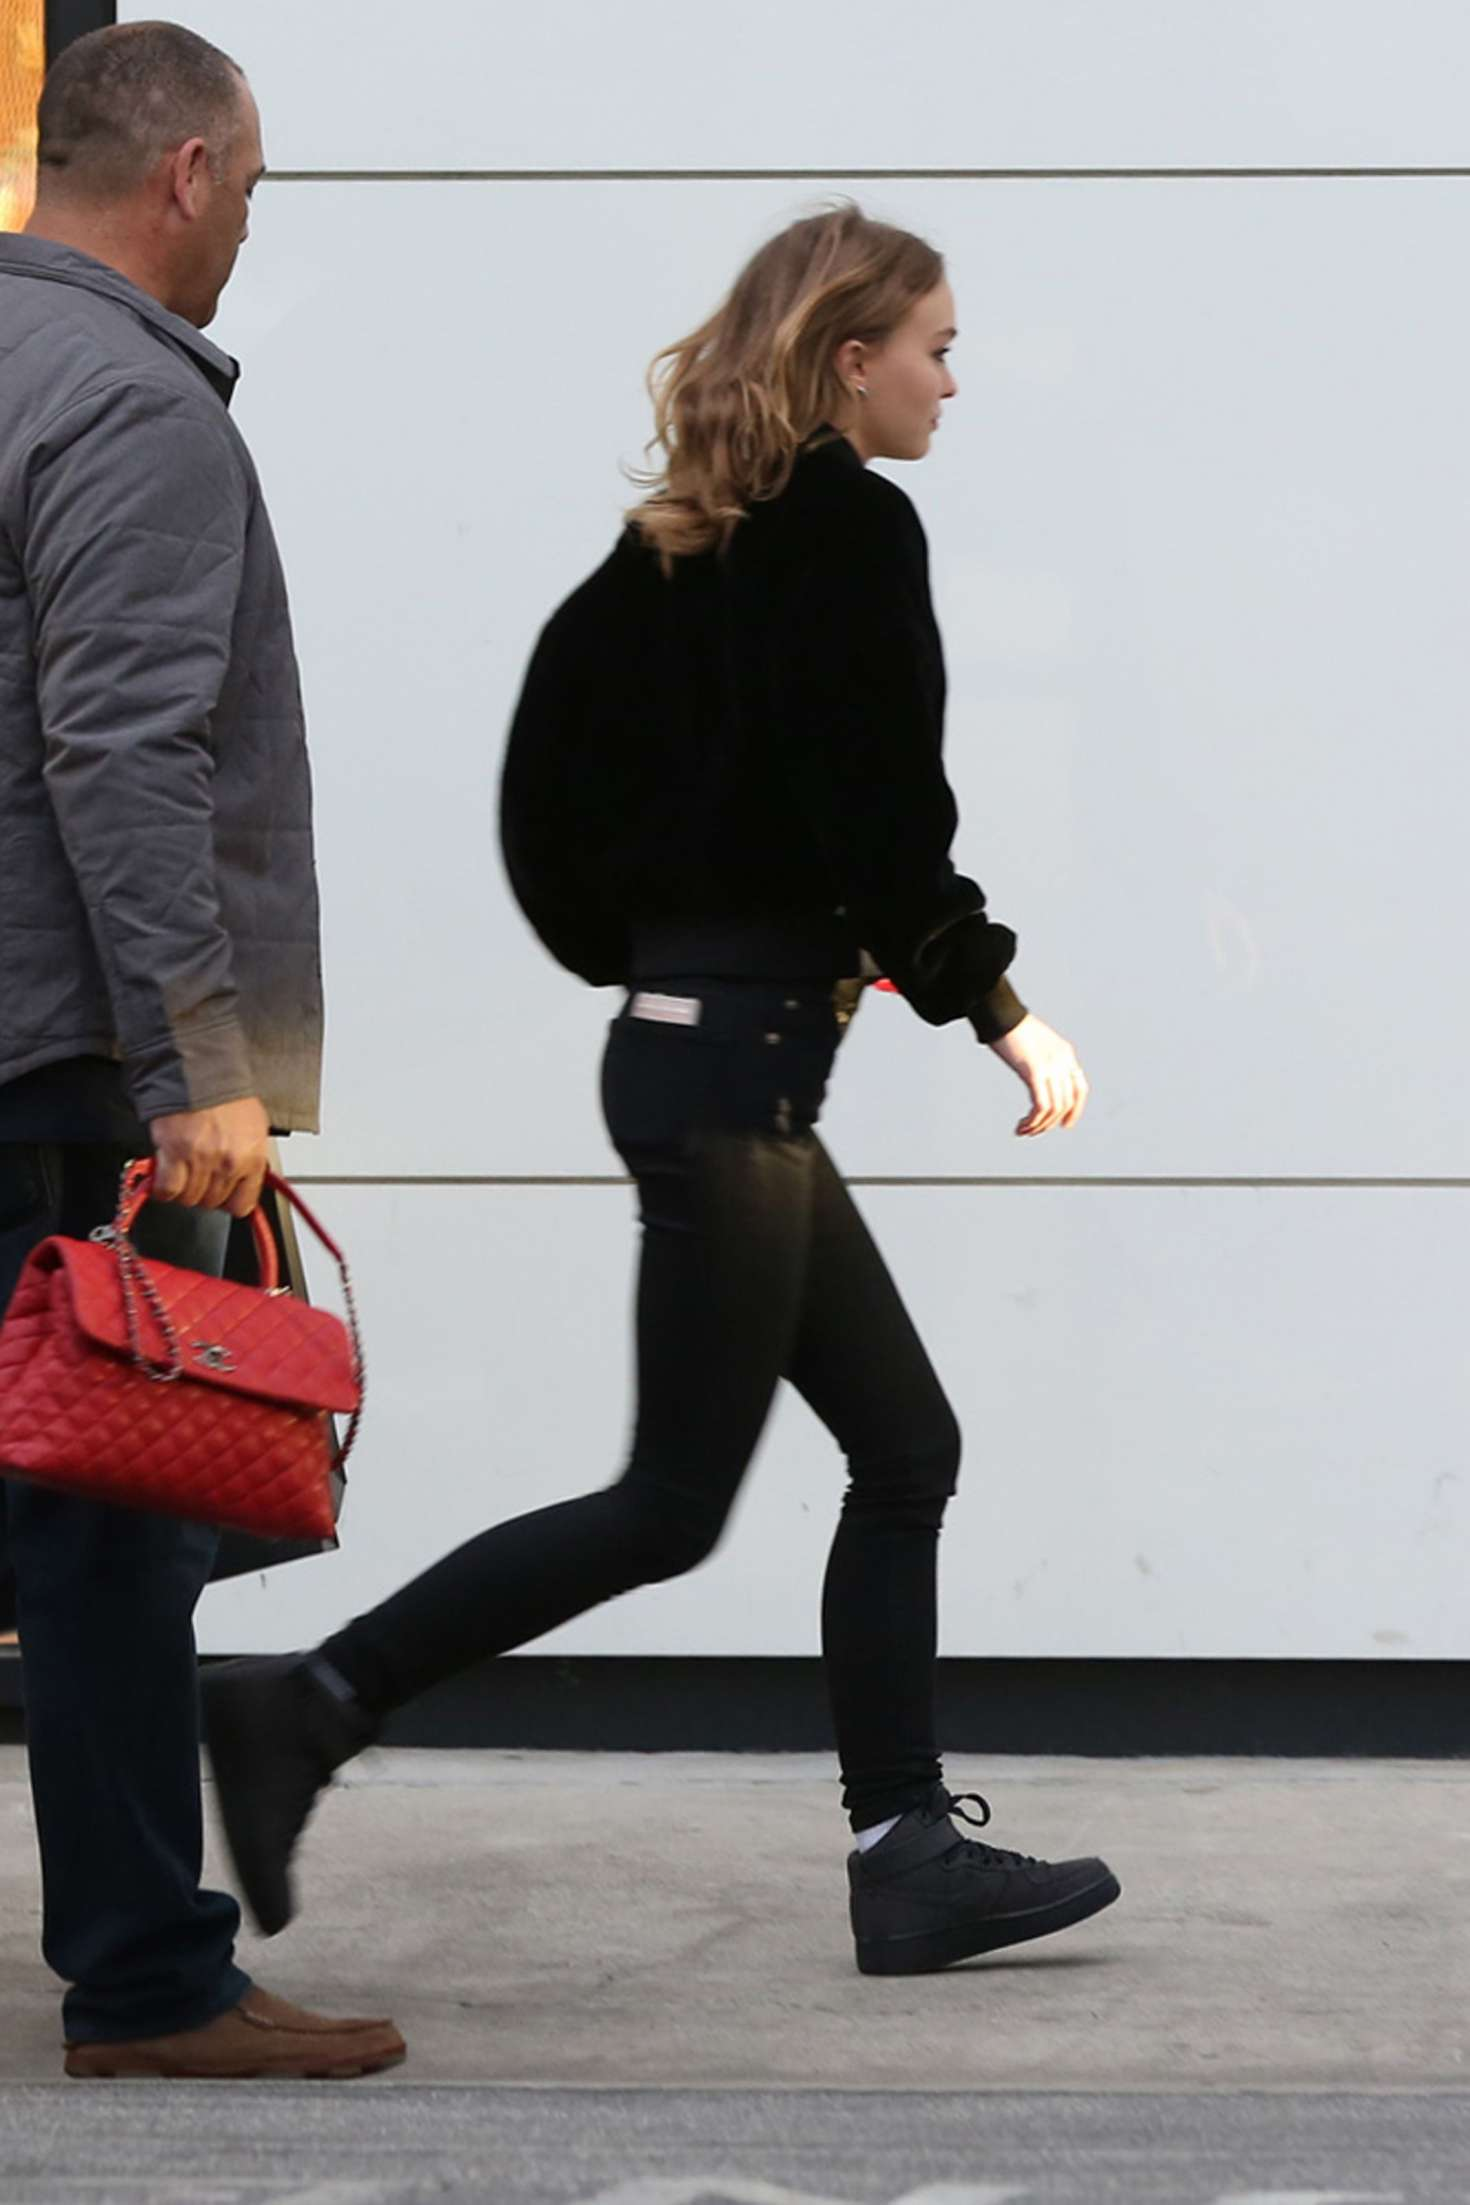 Lily rose depp leaves chanel after a shopping spree in beverly hills new foto